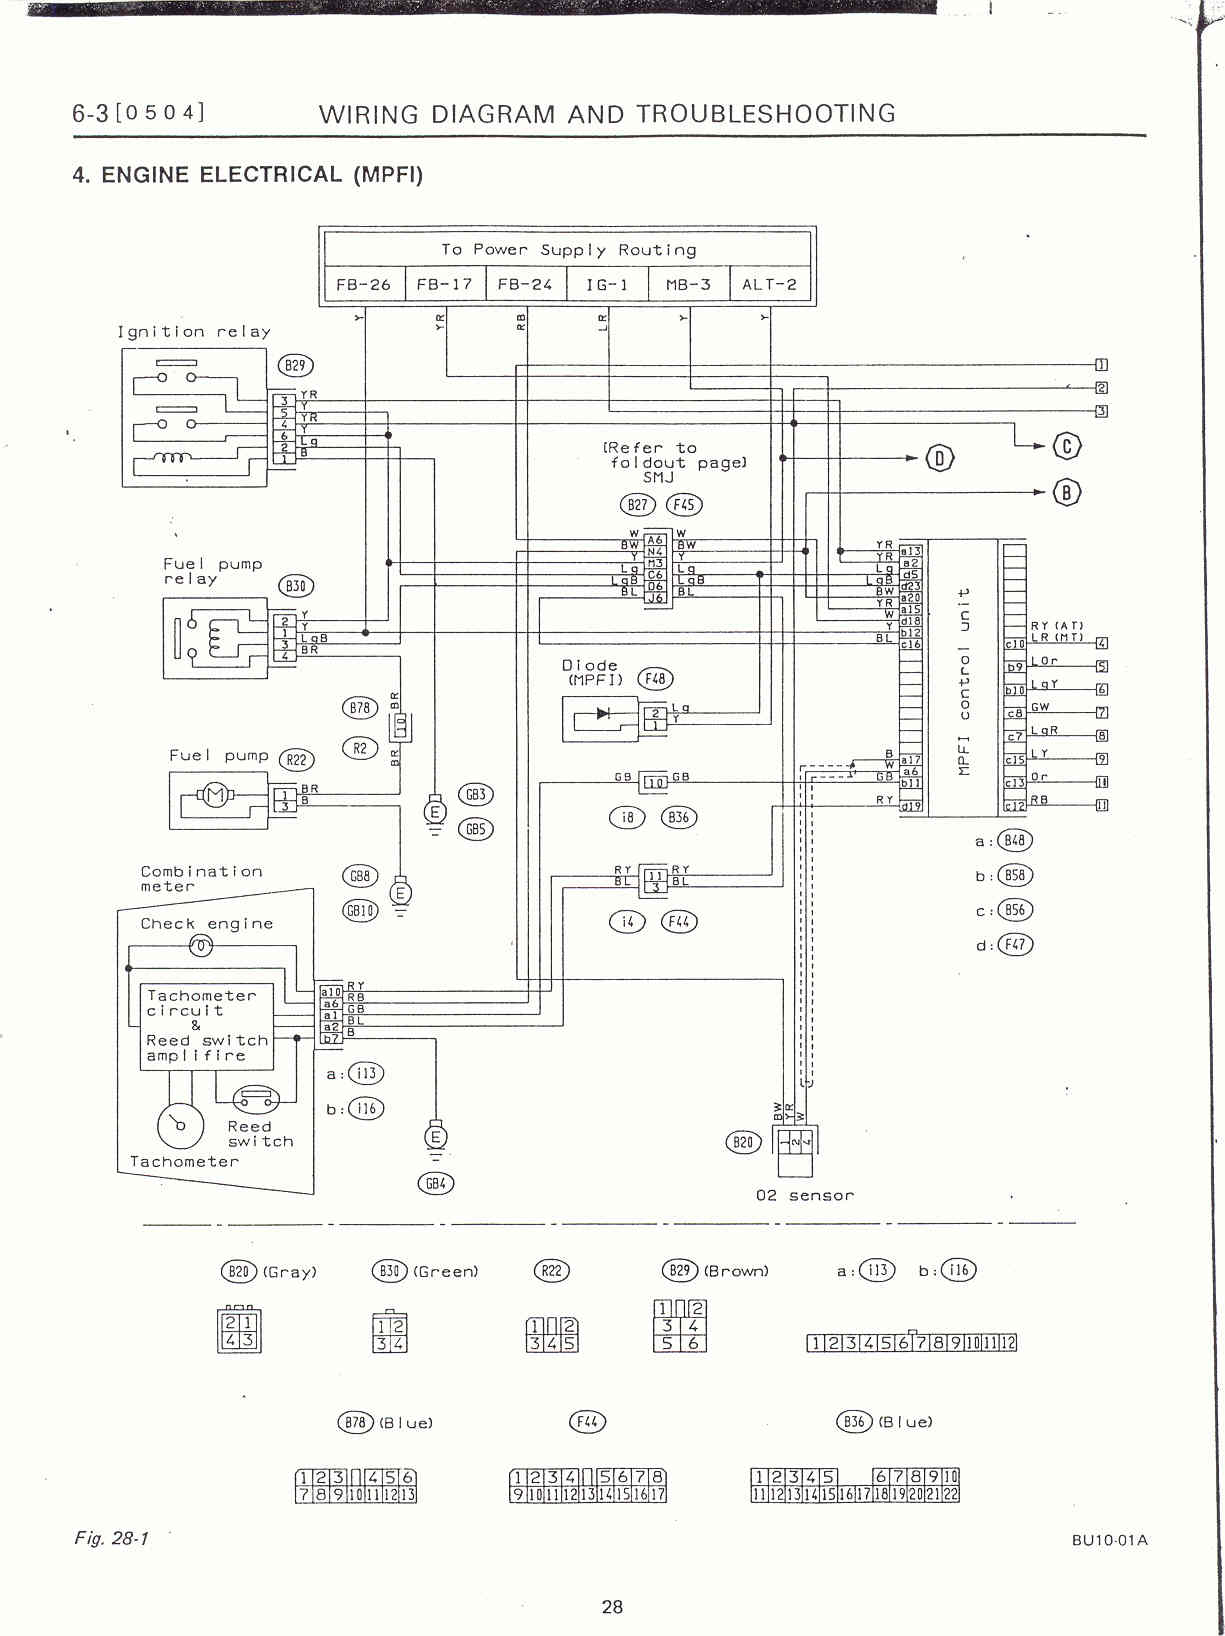 Wrx Wiring Diagram Home Link